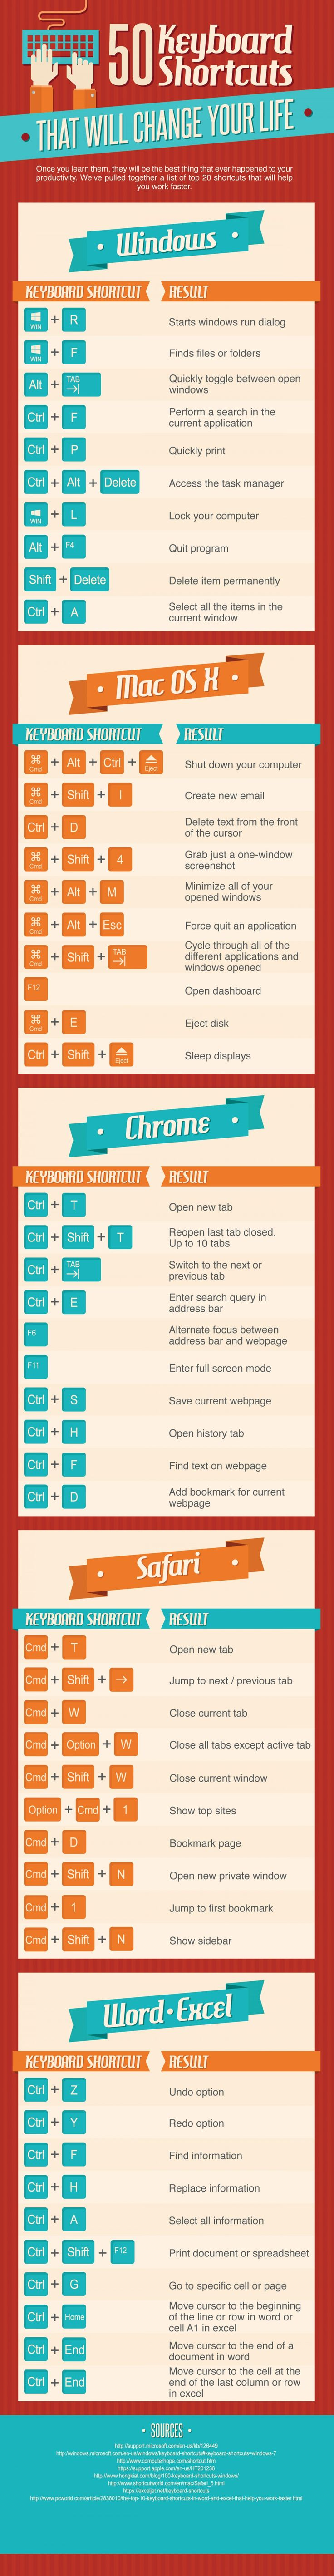 50 useful keyboard shortcuts. Re-pinned by #Europass